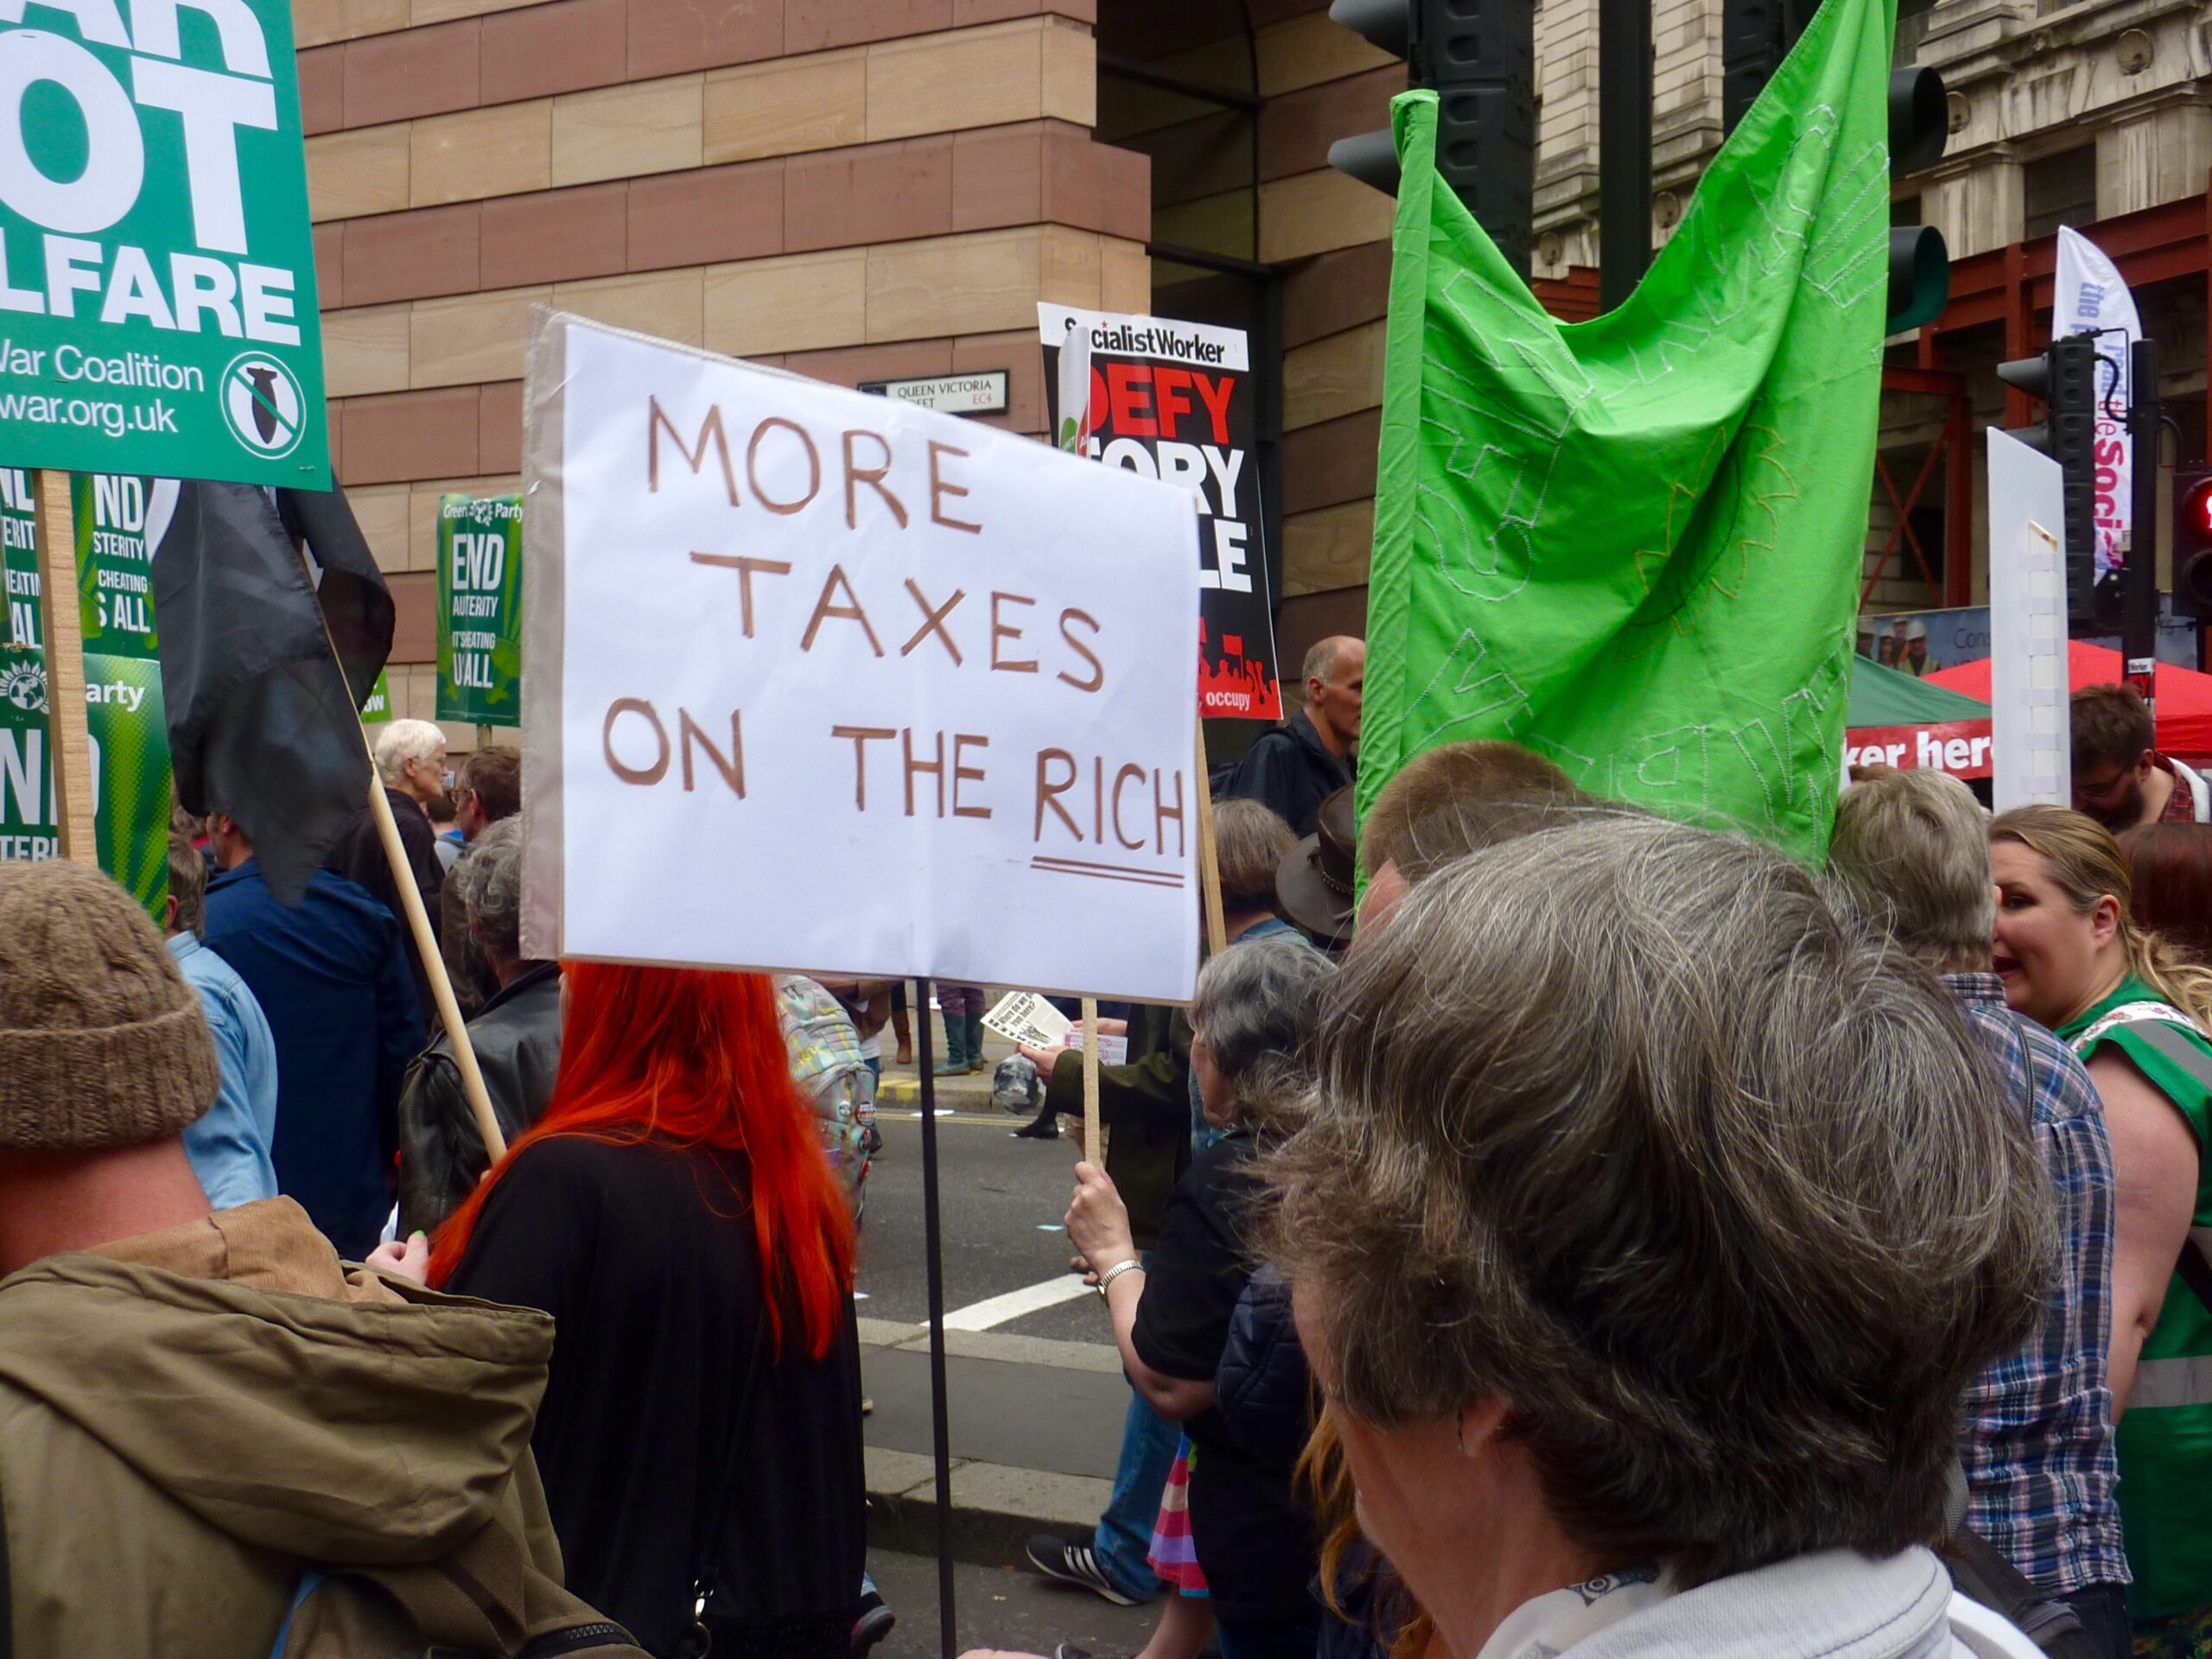 banner calling for more taxes on the rich